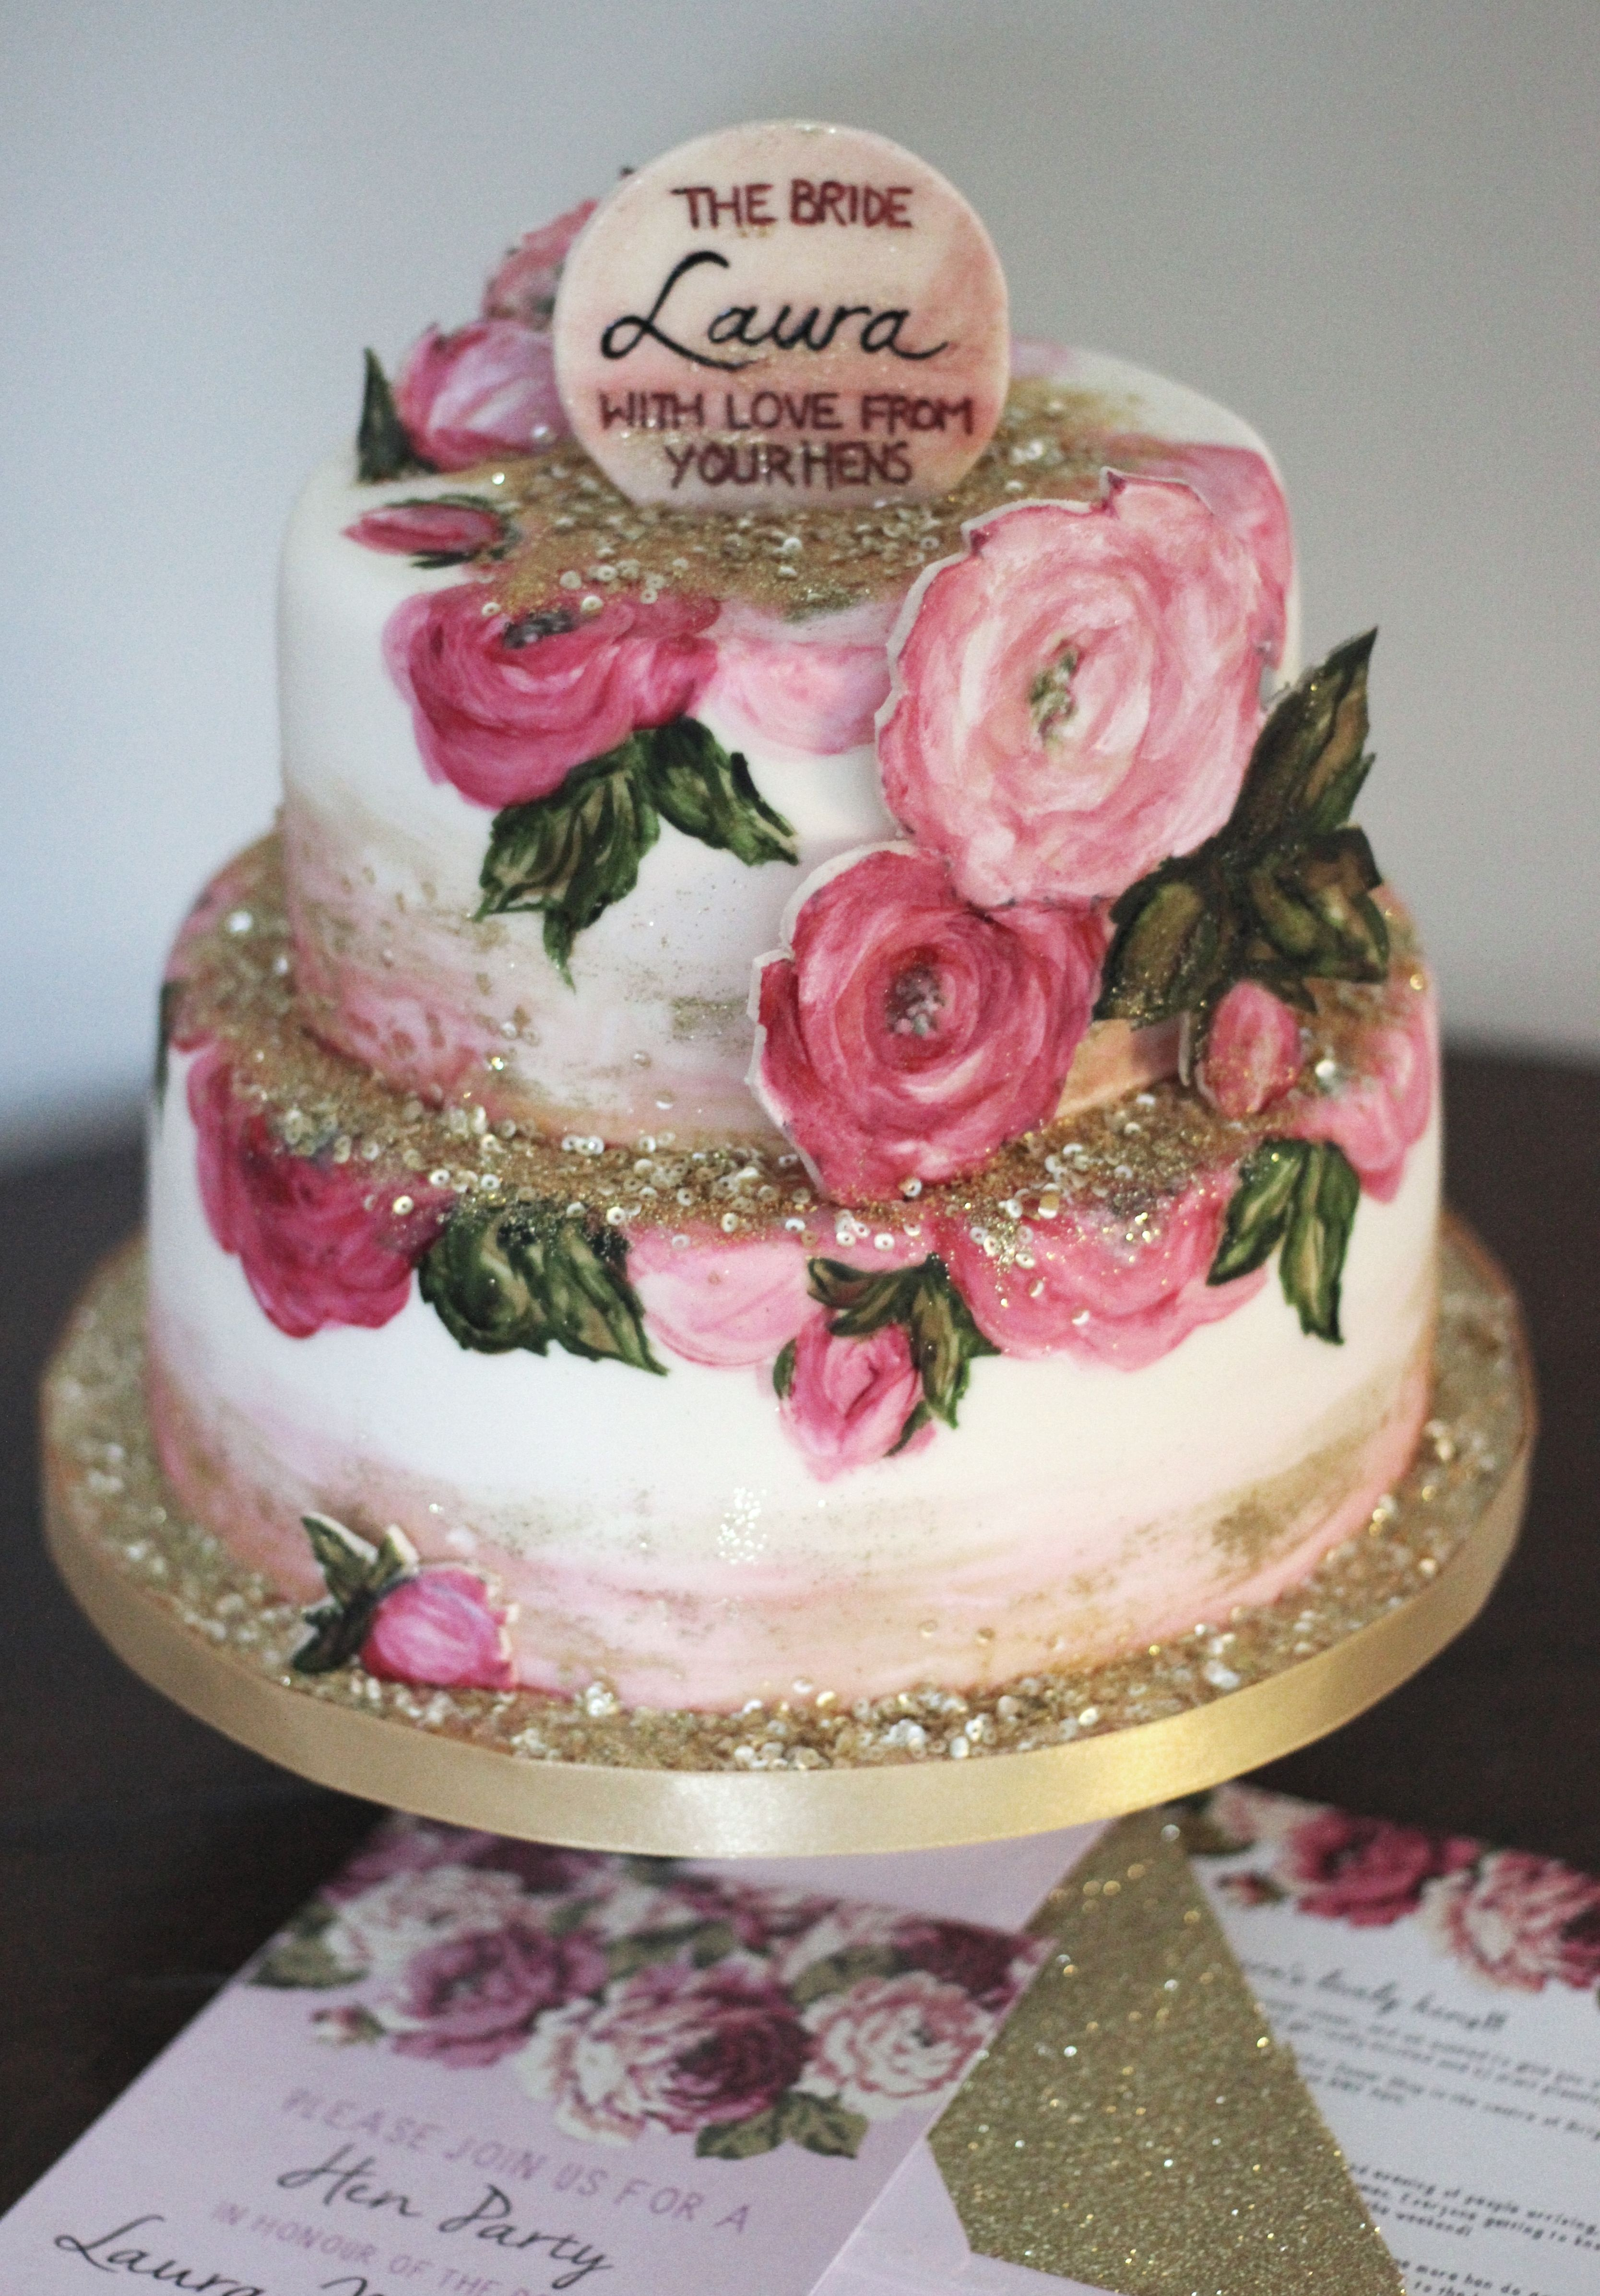 This weekends custom order hand painted roses and loads of edible sequins and glitter to match the hendo invites! #henmol #hendocake #paintedcake #thesugaredrose